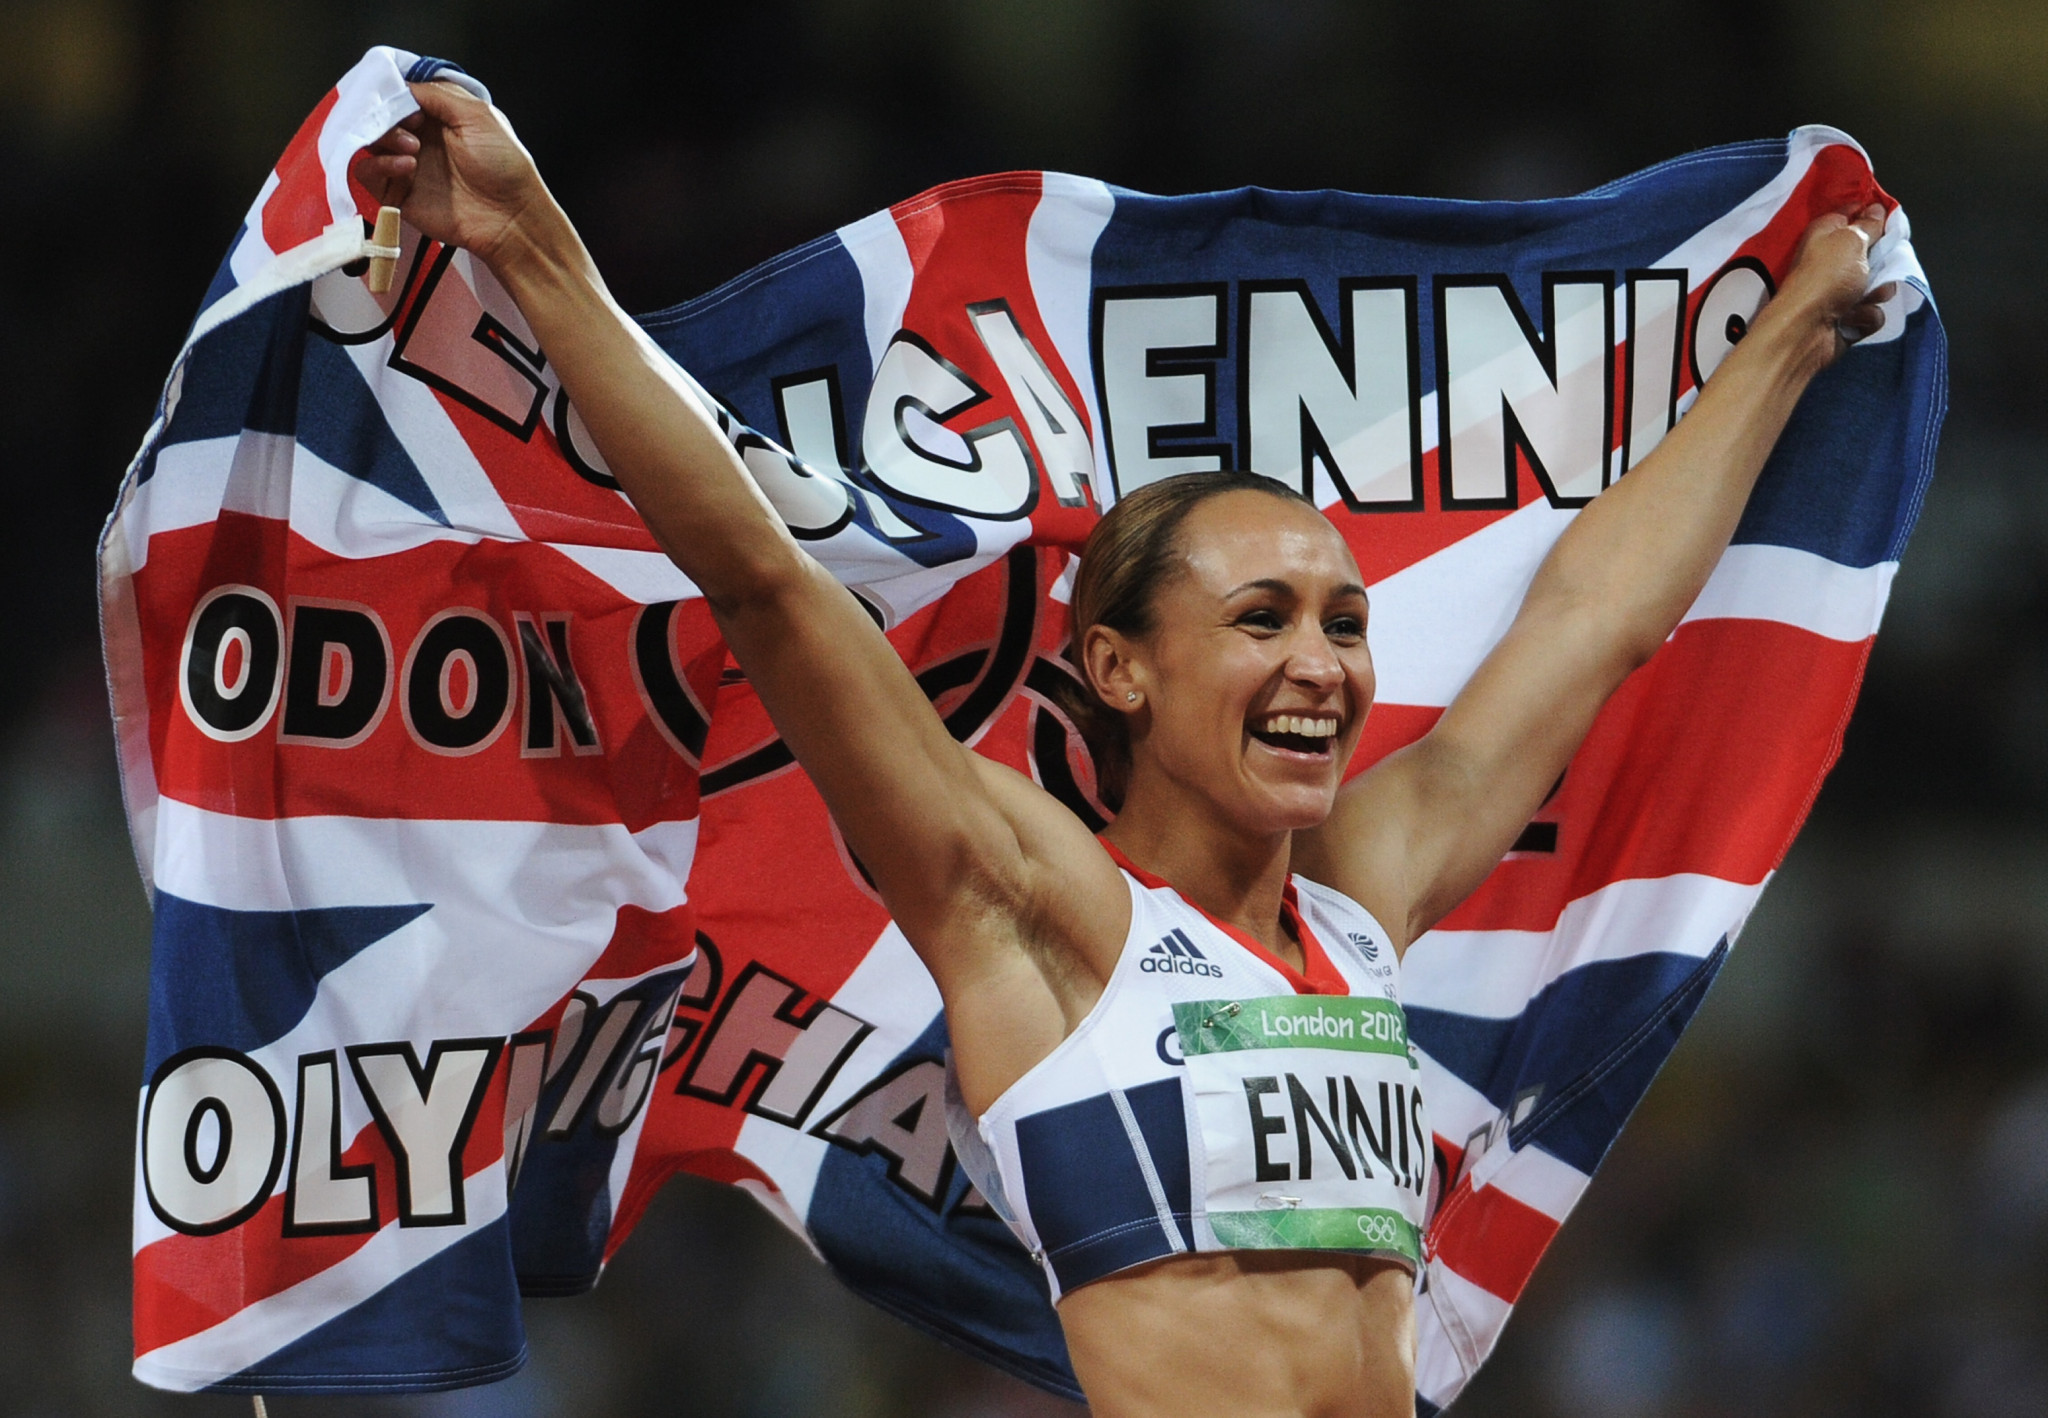 Jessica Ennis-Hill won one of three Team GB gold medals during 44 minutes on